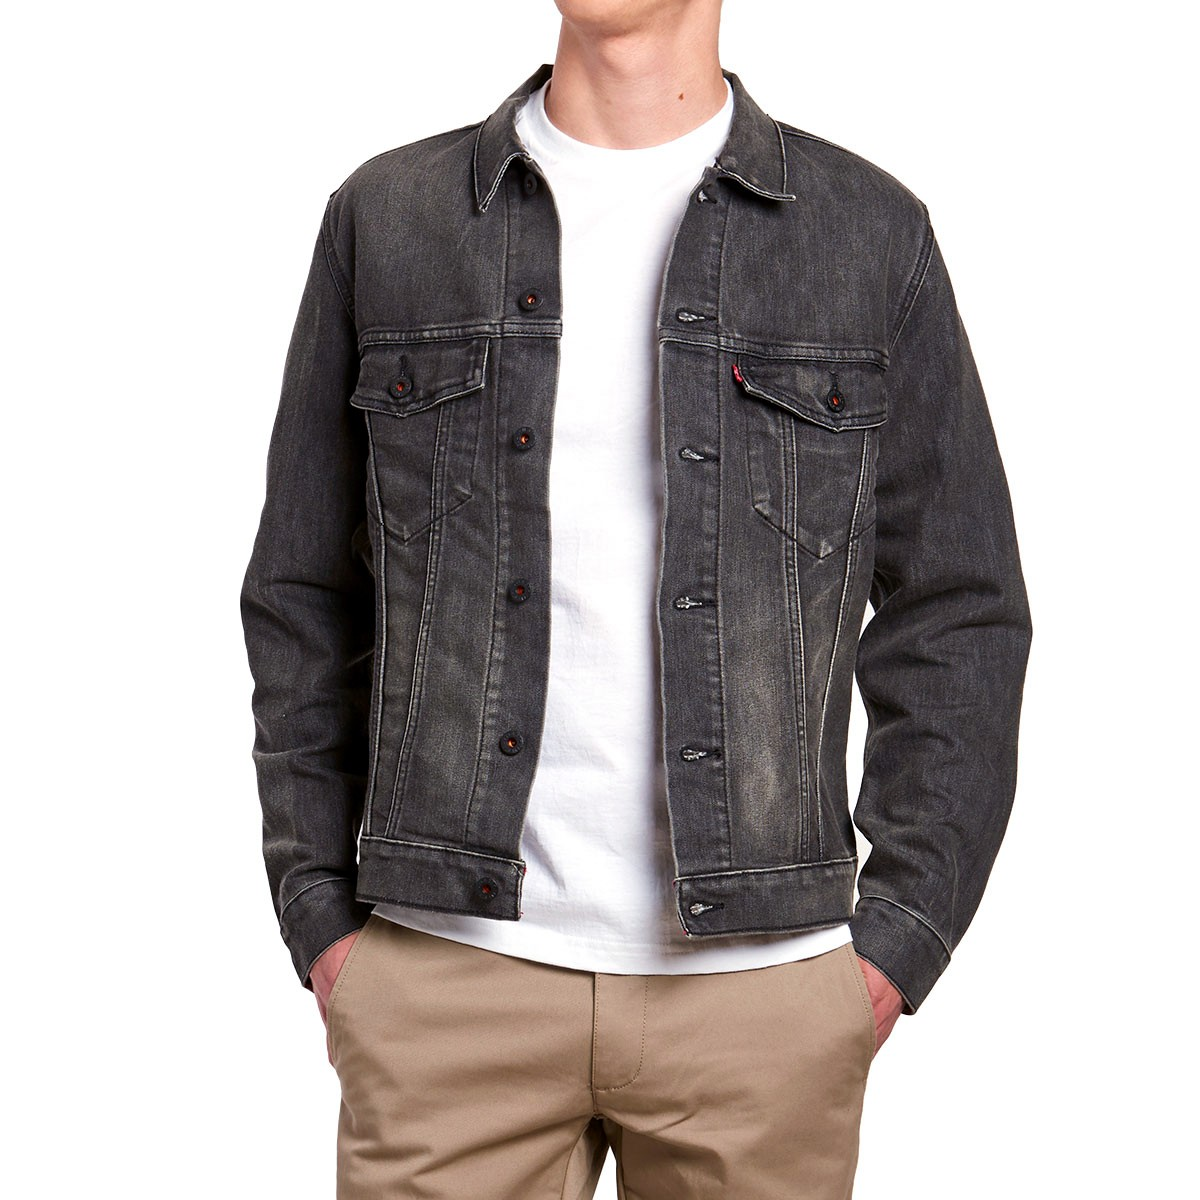 Leviu0026#39;s Type 2 Denim Trucker Jacket - Black Battery